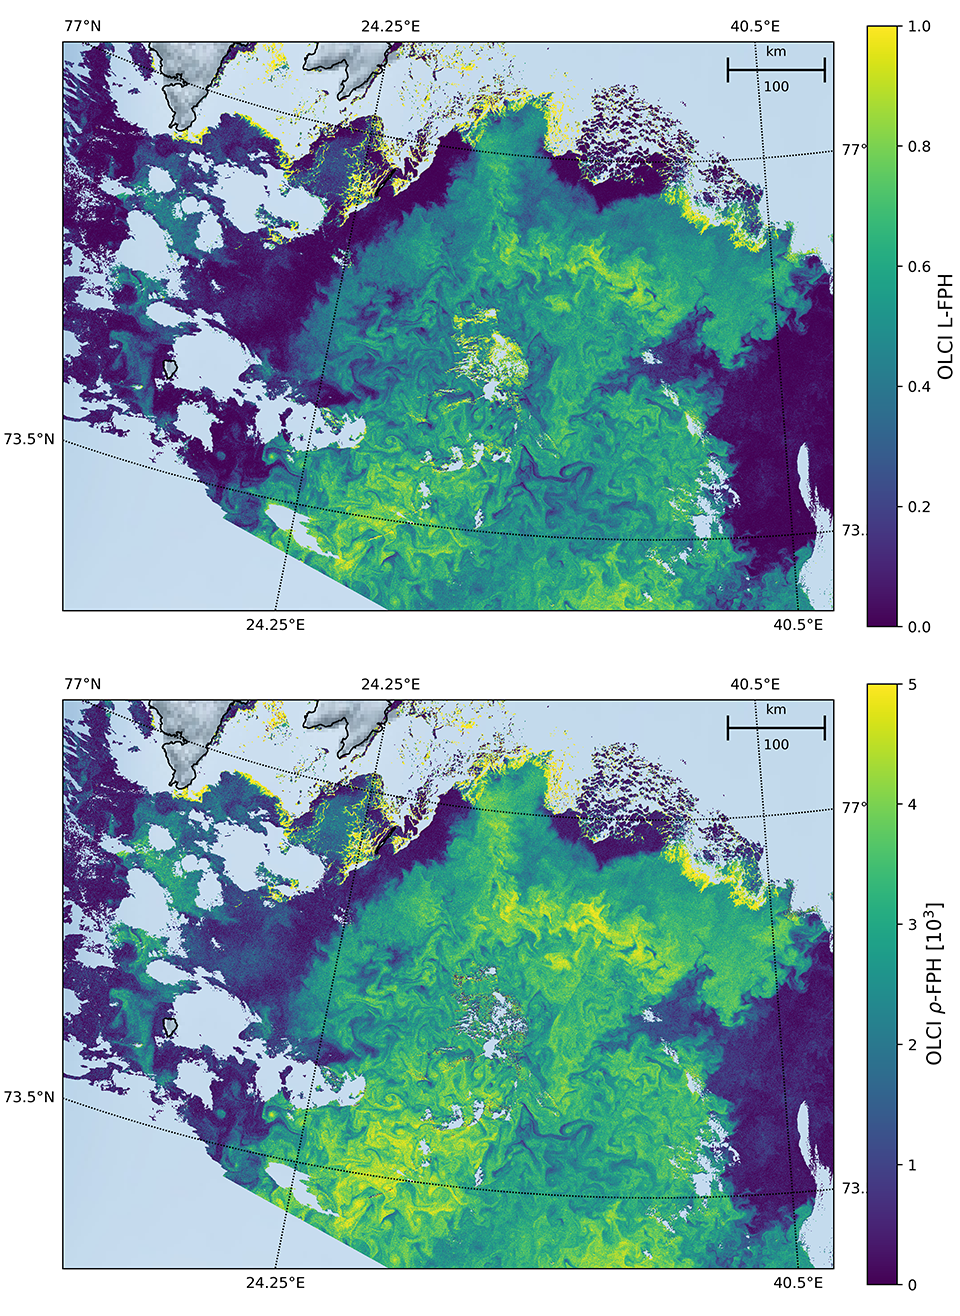 Figure 5: L-FPH (upper panel) and ρ-FPH (lower panel) on 5 July in the Barents Sea